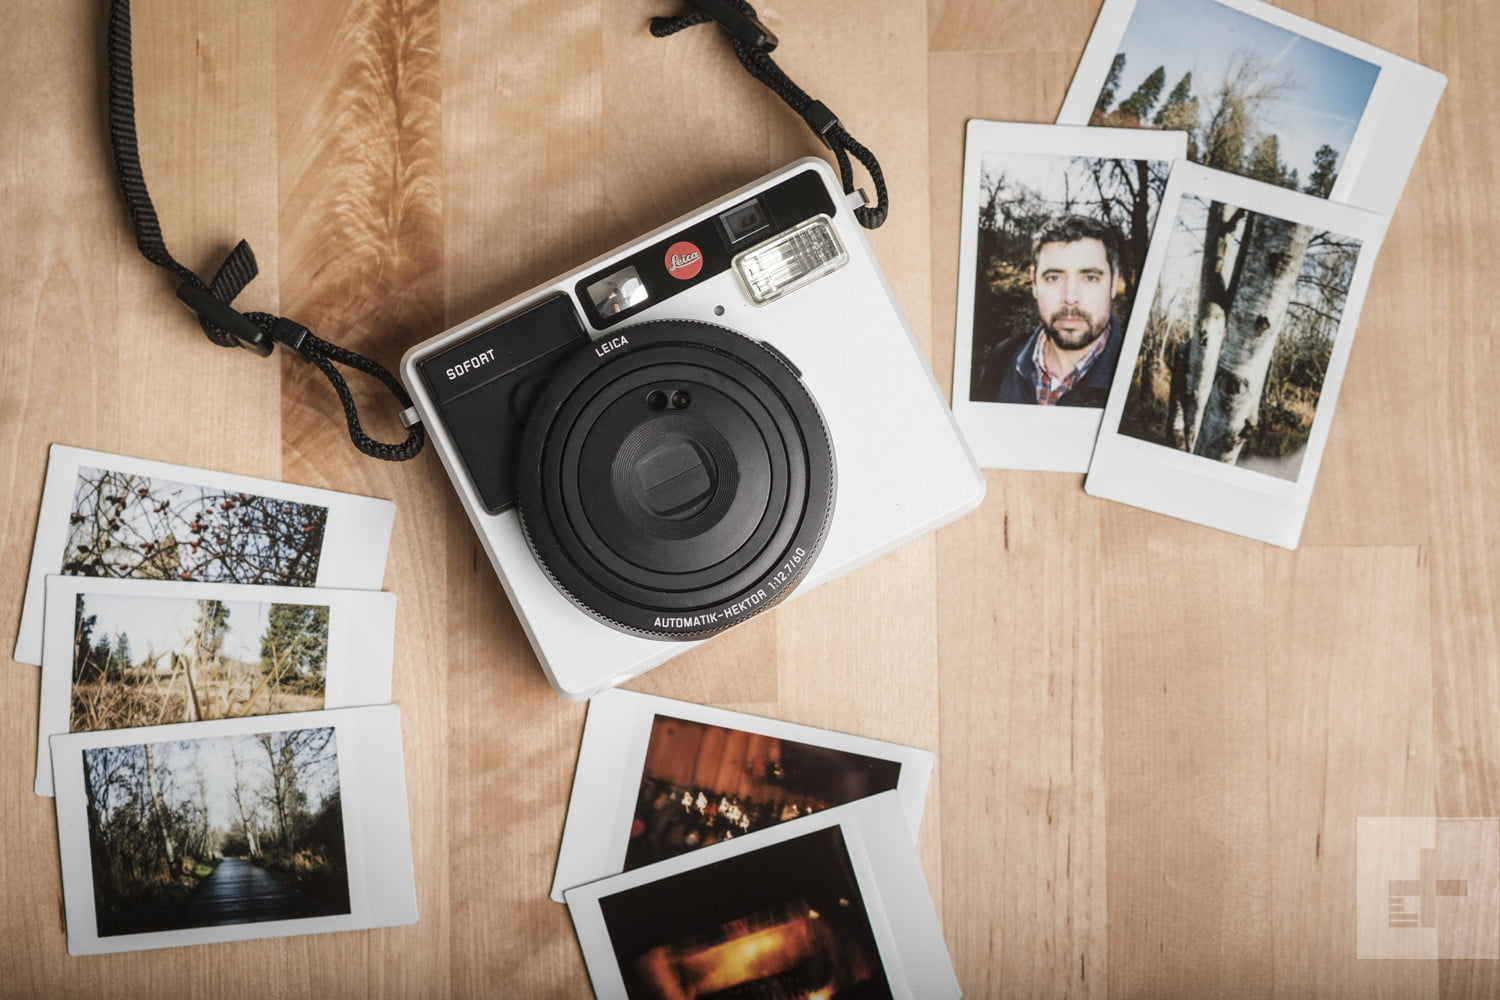 The Best Instant Cameras for 2019 | Digital Trends